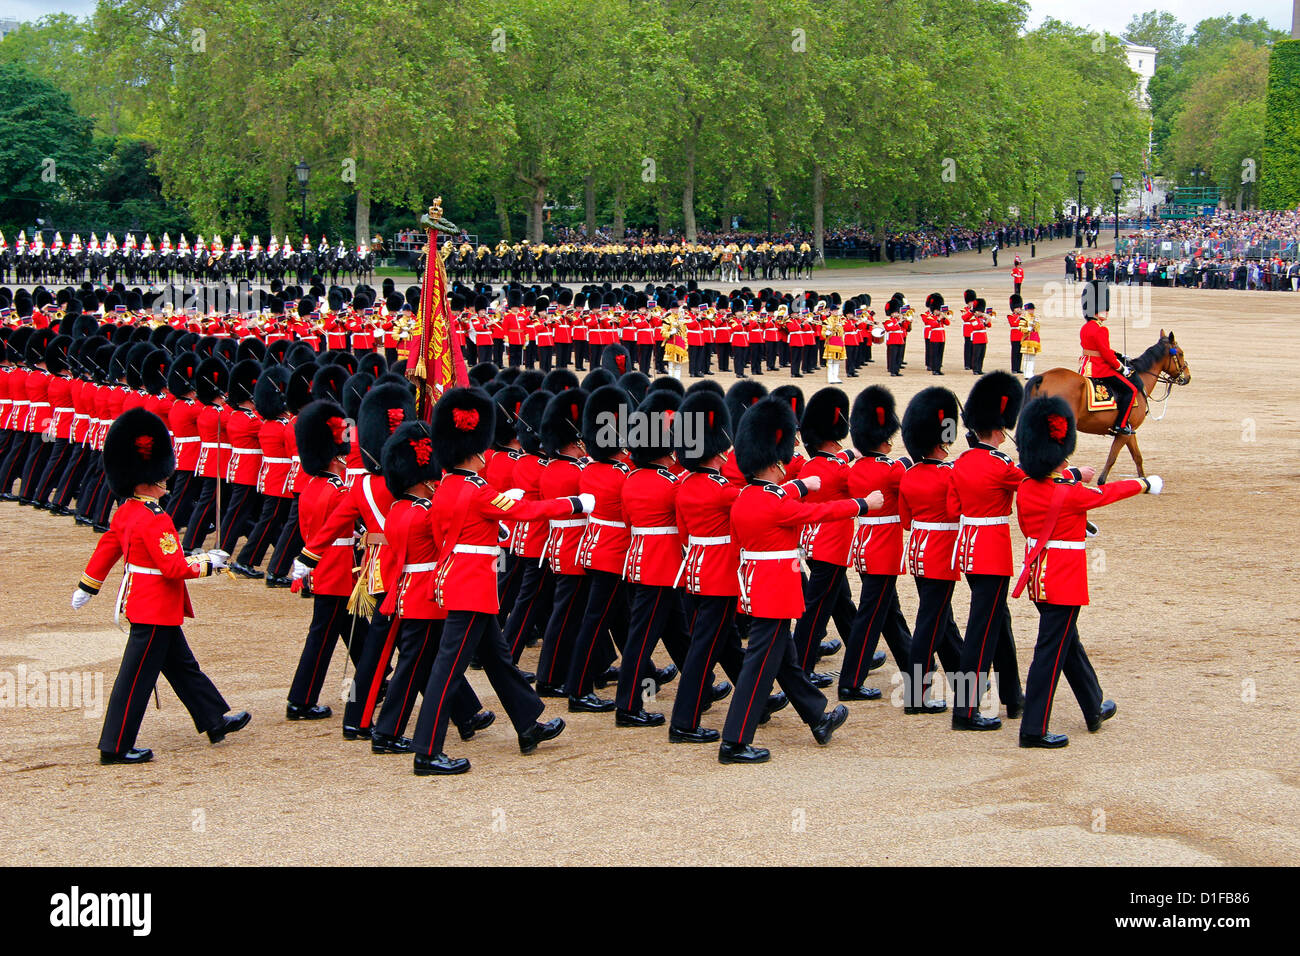 Soldiers at Trooping the Colour 2012, The Queen's Official Birthday Parade, Horse Guards, Whitehall, London, - Stock Image